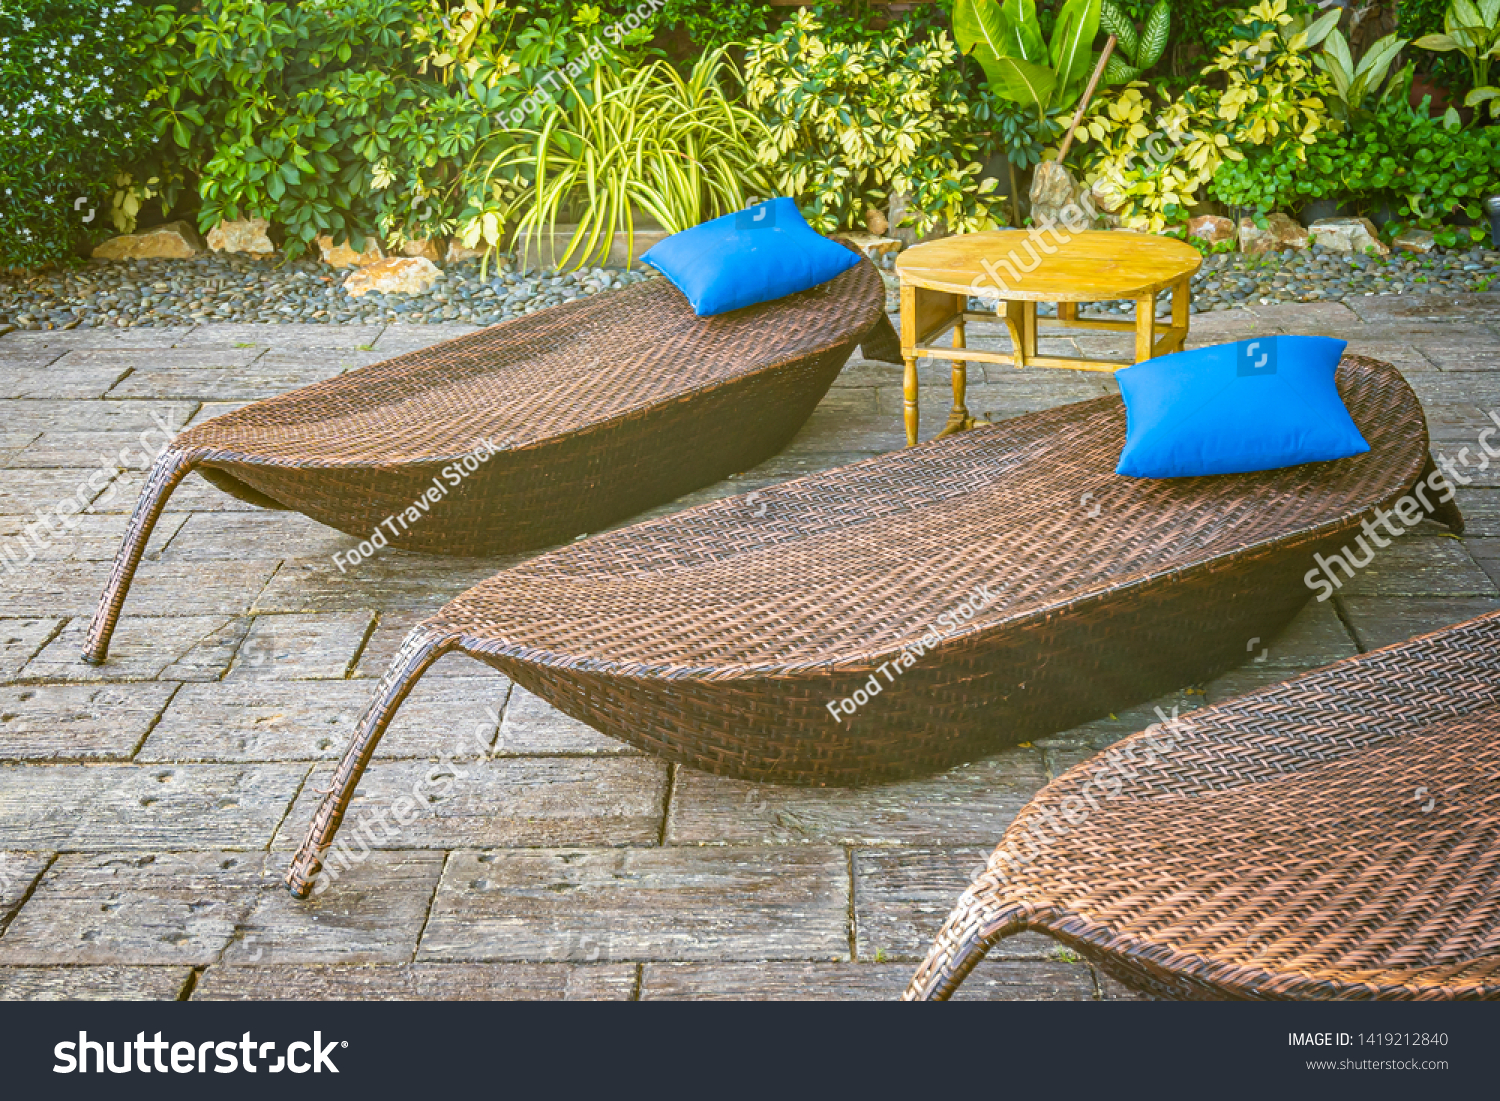 stock photo empty chair decoration outdoor patio for relax and take a break